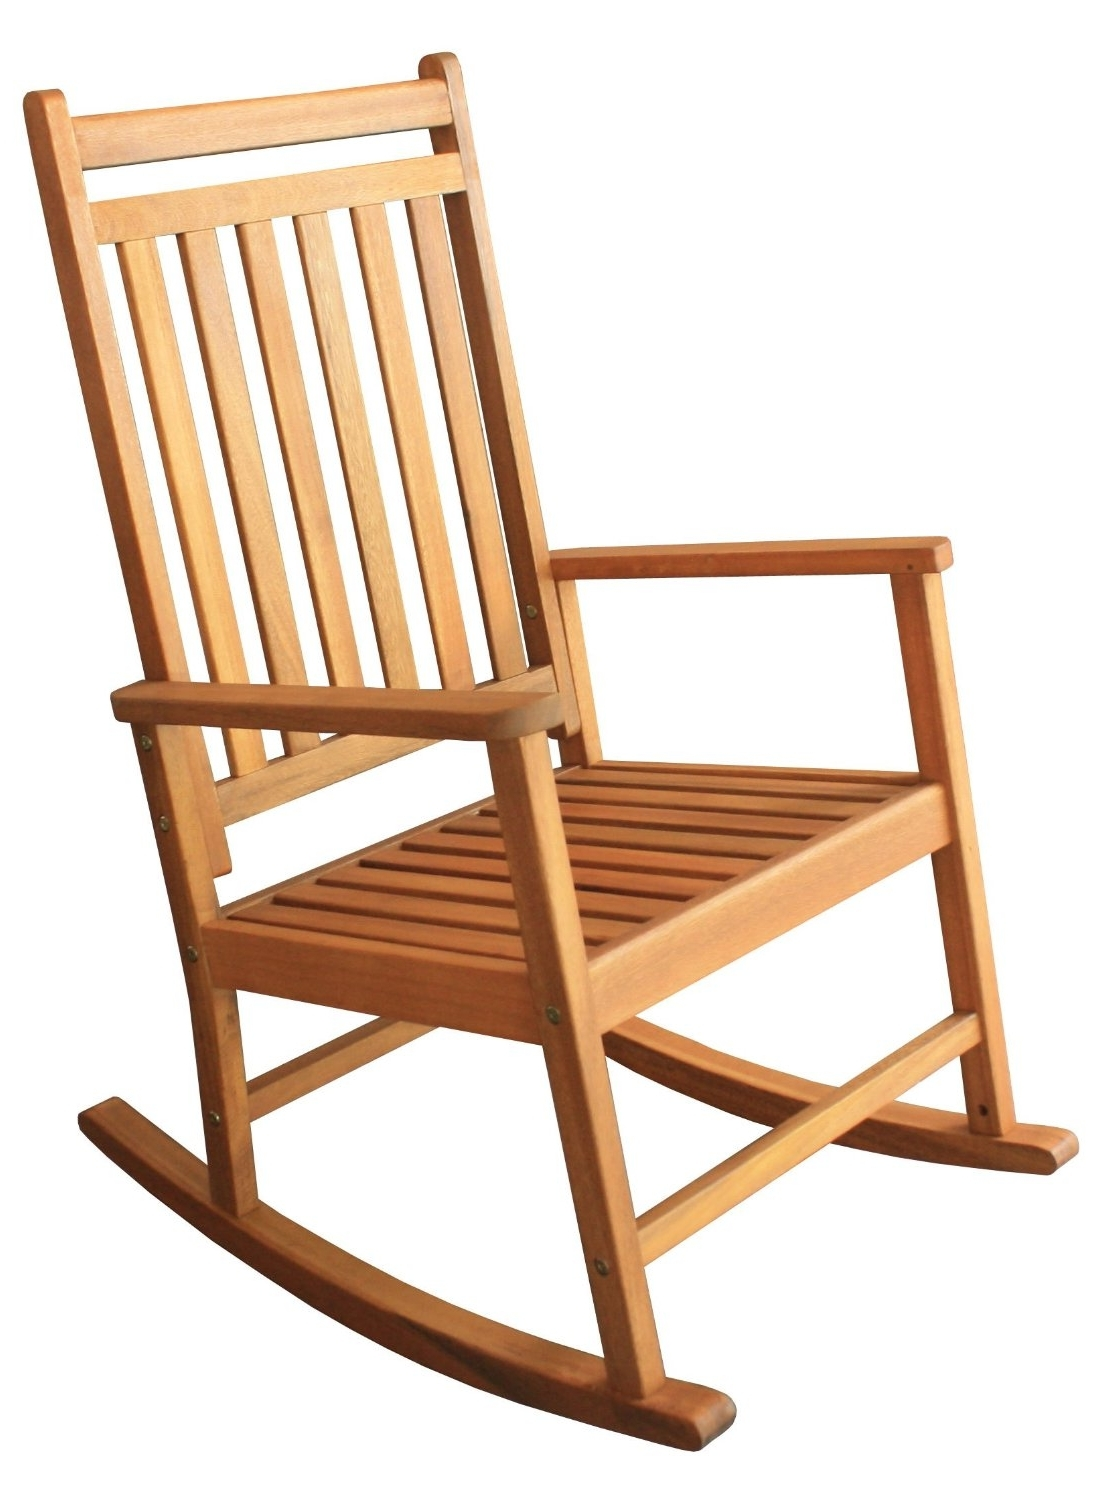 Rocking Chair Outdoor Wooden For Trendy Wood Rocking Chair Images – Wood Rocking Chair Buying Considerations (View 8 of 15)